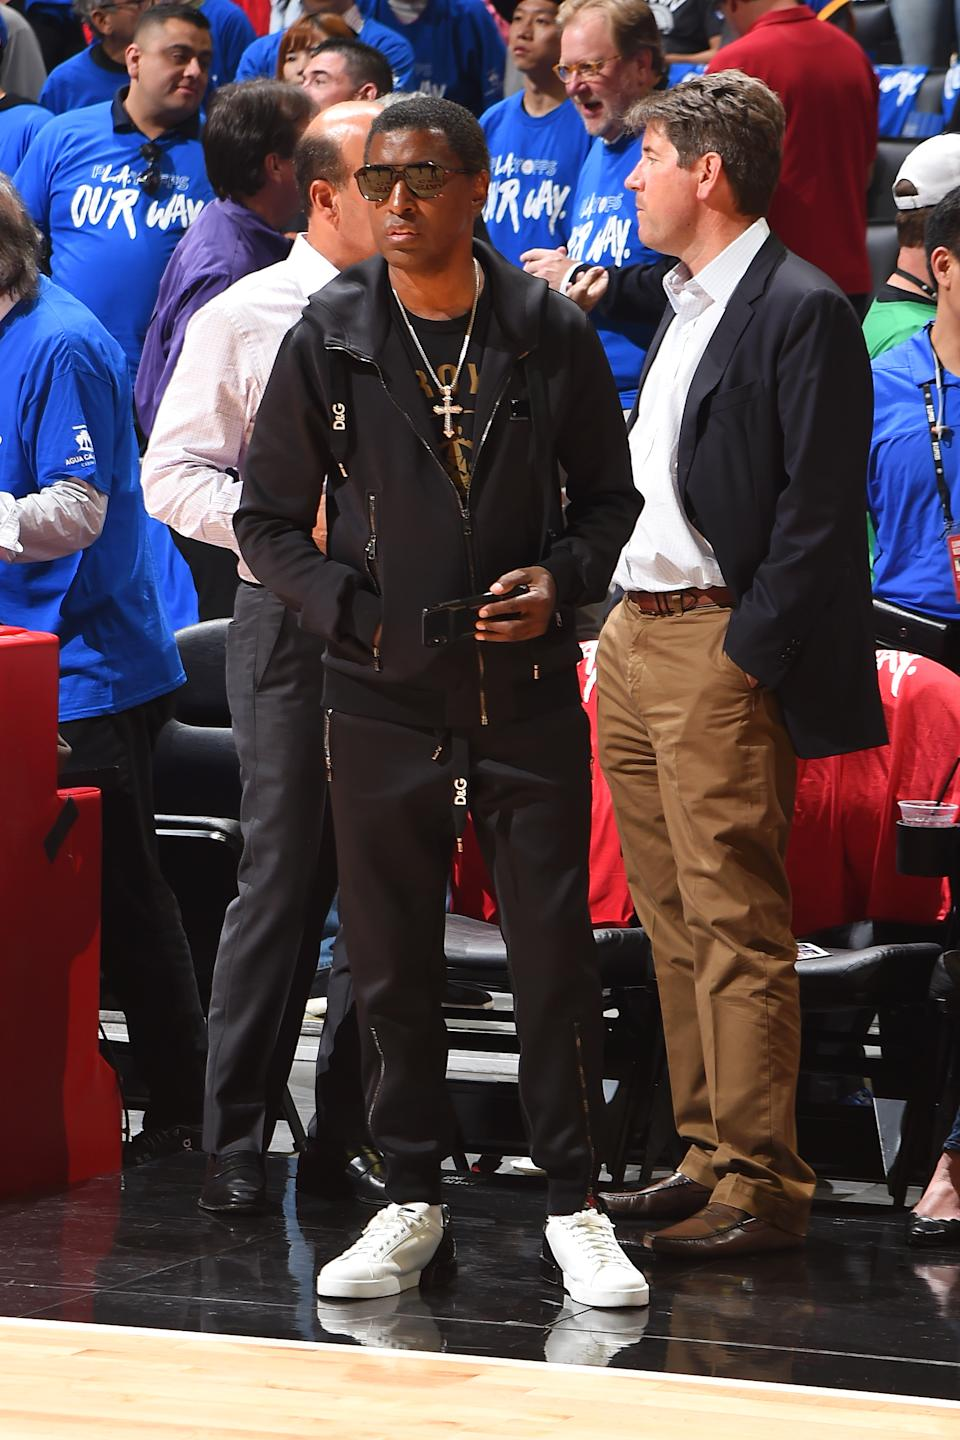 Singer Babyface attends Game Three of Round One of the 2019 NBA Playoffs on April 18, 2019 at STAPLES Center in Los Angeles, California. NOTE TO USER: User expressly acknowledges and agrees that, by downloading and/or using this Photograph, user is consenting to the terms and conditions of the Getty Images License Agreement. Mandatory Copyright Notice: Copyright 2019 NBAE (Photo by Andrew D. Bernstein/NBAE via Getty Images)